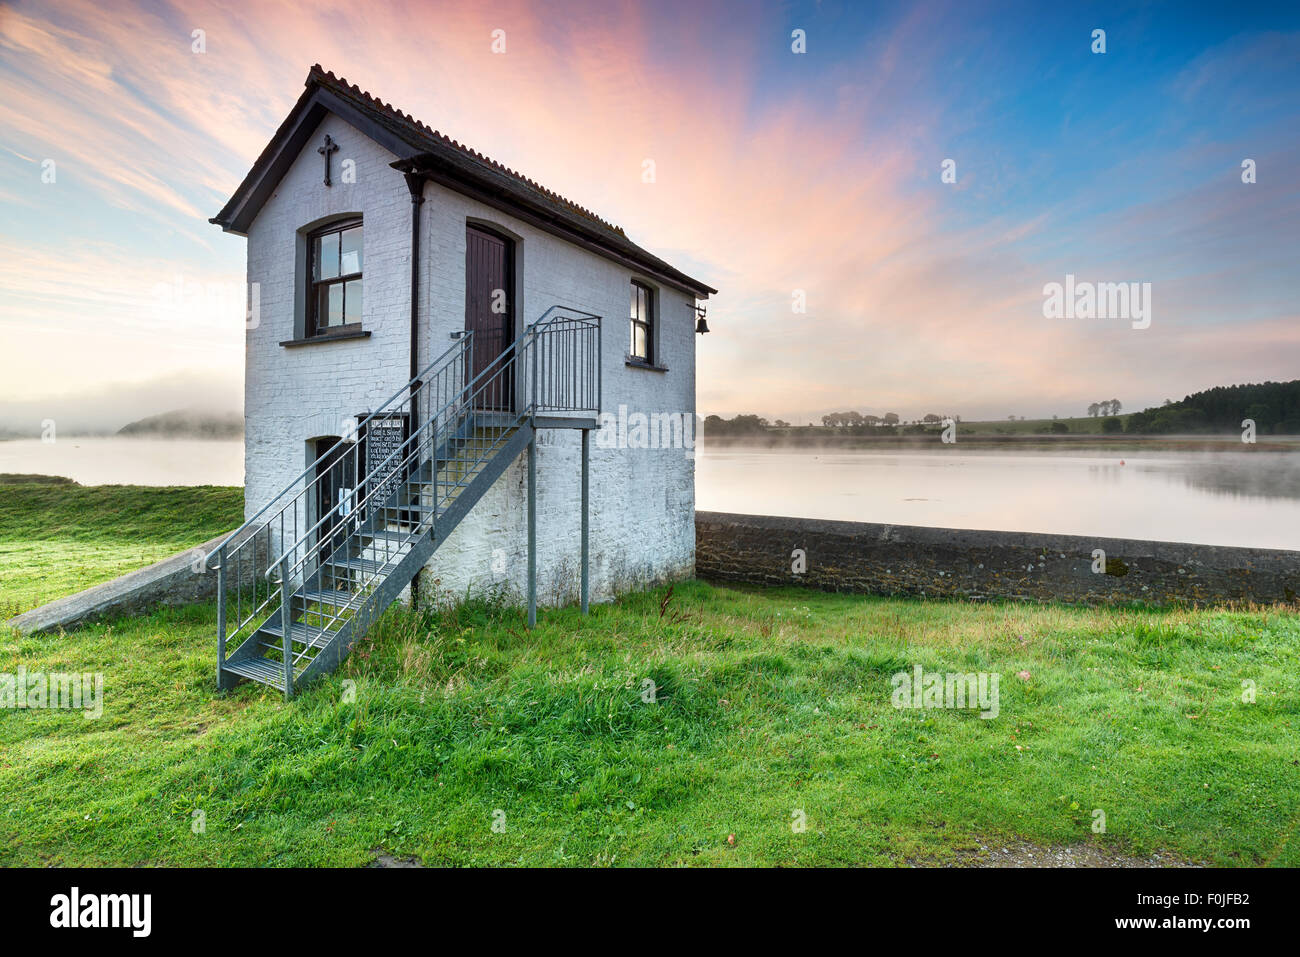 An old chapel at Halton Quay on the banks of the river Tamar near St Mellion in Cornwall, looking out to Devon across - Stock Image